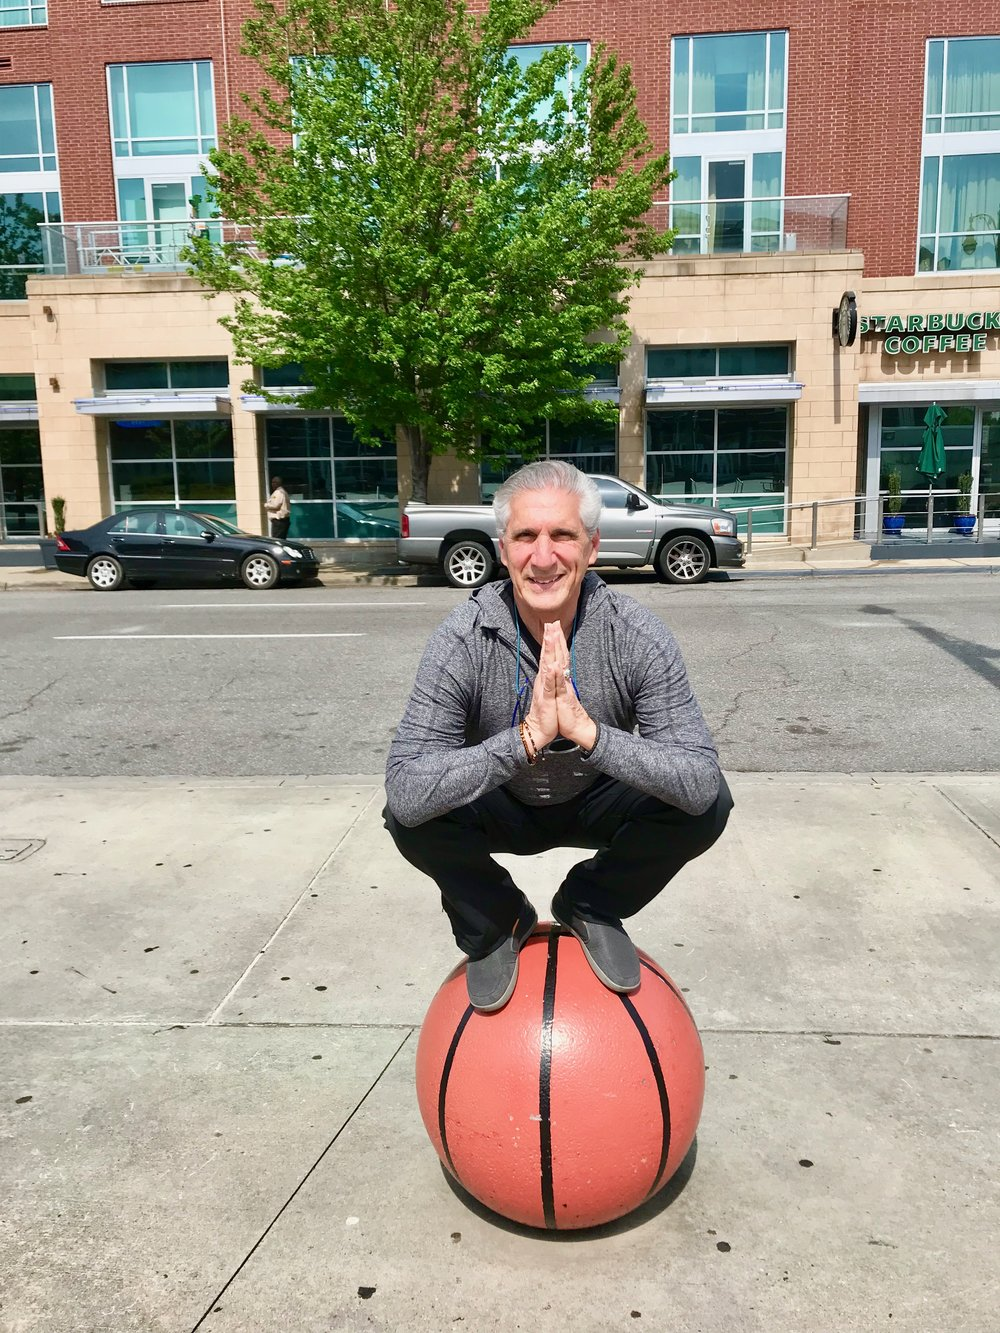 Squat Pose in Namaste on Basketball.jpg